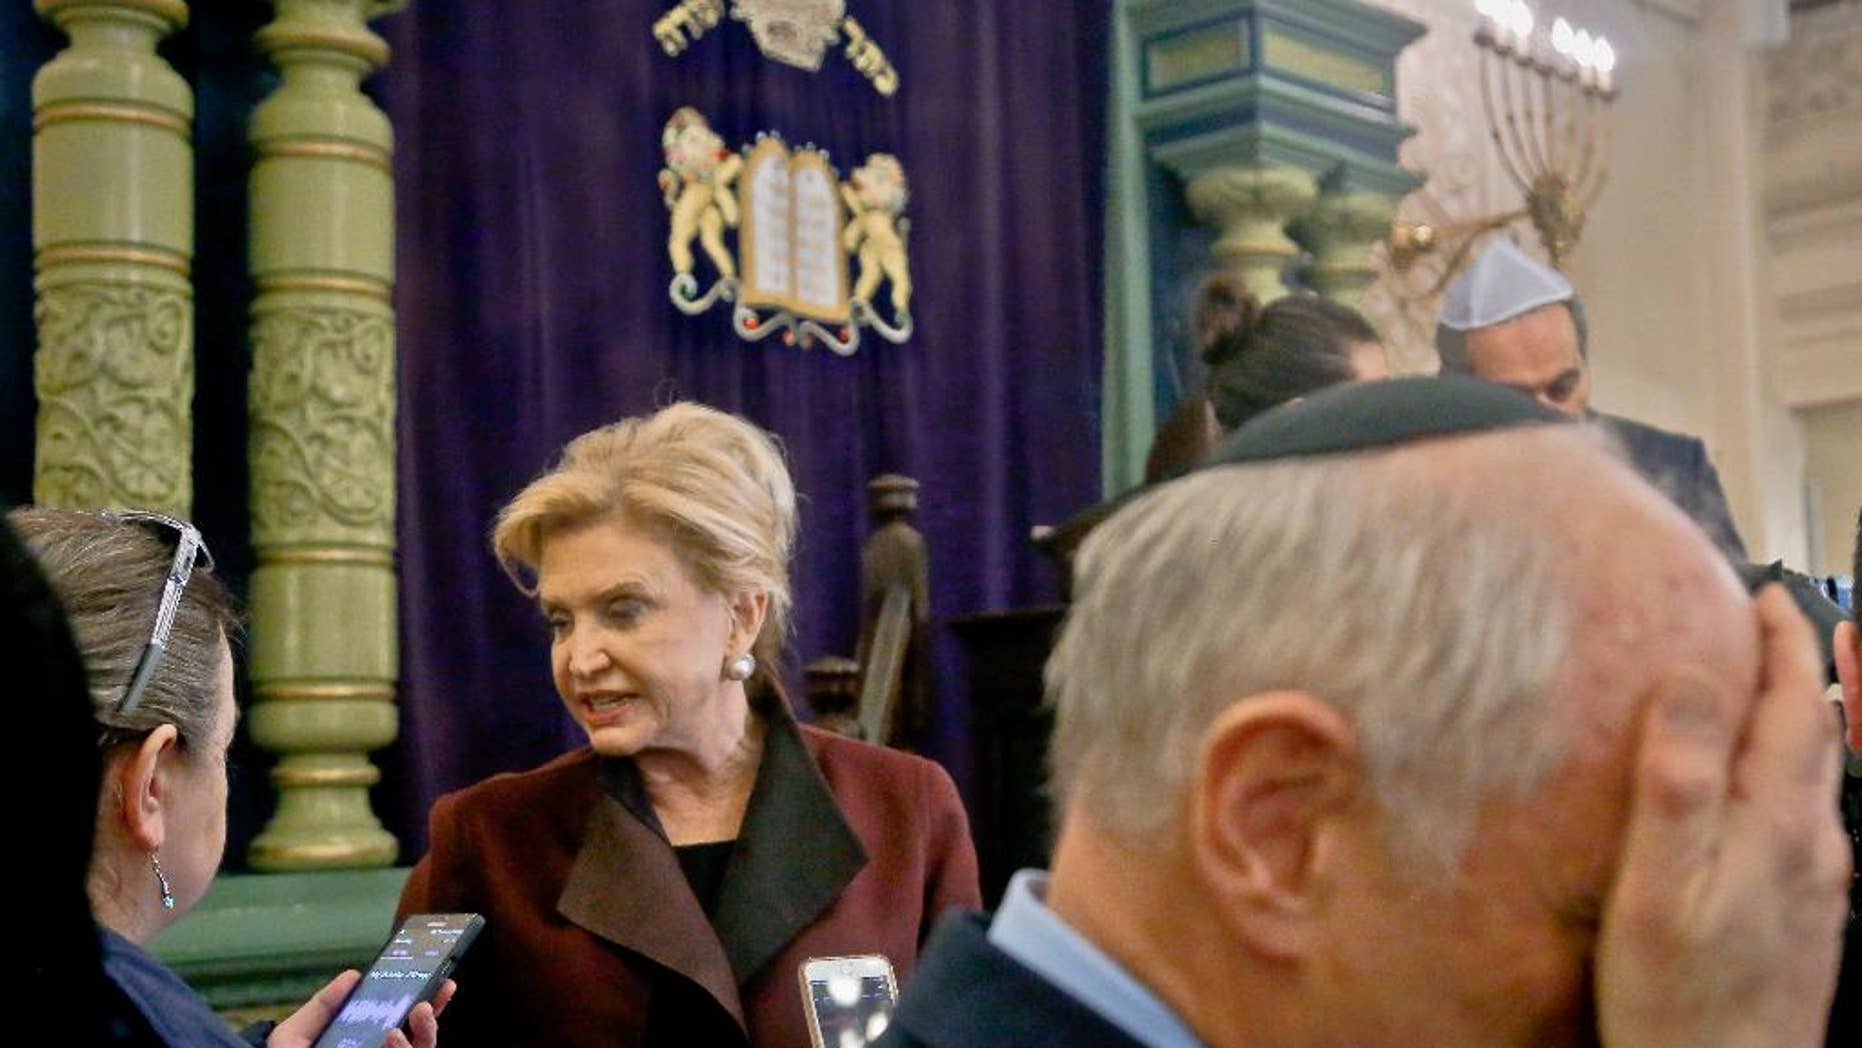 FILE - In this March 3, 2017, file photo, Congresswoman Carolyn Maloney, center, a member of Congress's bipartisan task force combating anti-Semitism, speaks with a reporter after holding a news conference to address bomb treats against Jewish organizations and vandalism at Jewish cemeteries at the Park East Synagogue in New York. Kendall Sullivan, a Connecticut man who posted threats against Jews and synagogues on a metal music internet forum plans to argue at his sentencing that he has served enough time in prison. Sullivan is scheduled to go before a U.S. District judge in Bridgeport on Monday, April 17. He pleaded guilty in January to perpetrating a hoax and originally faced three federal charges of making online threats. (AP Photo/Bebeto Matthews, File)